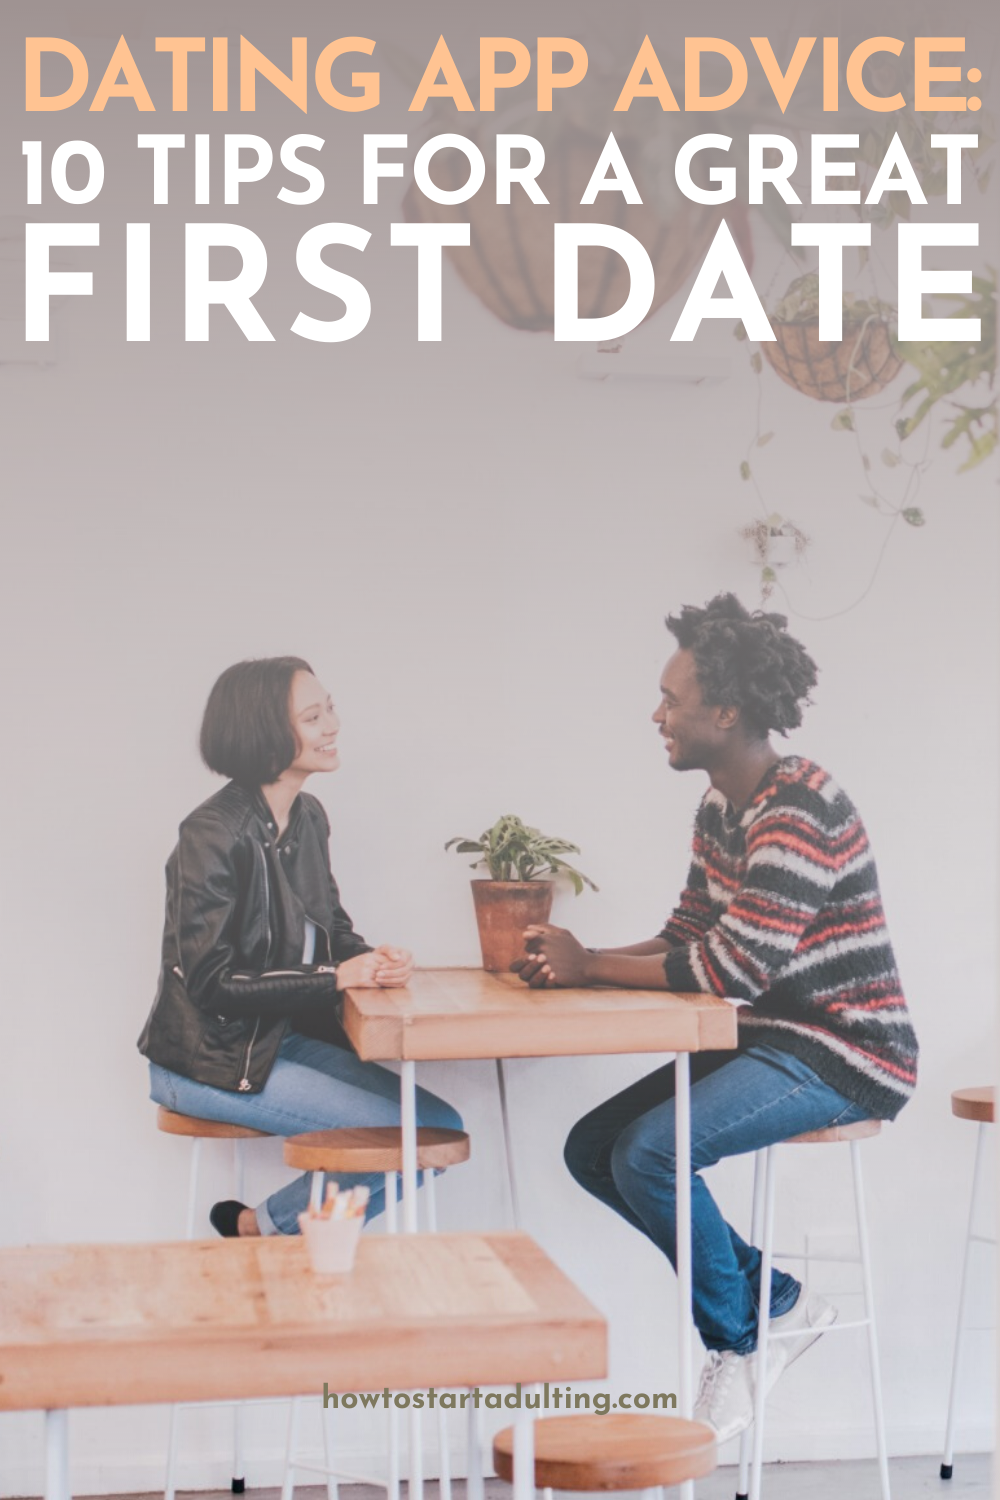 Online Dating 101_ 10 Tips For A Great First Dating App Date #datingapp #datingapps #tinderdate #bumbledate #datingtips #onlinedating